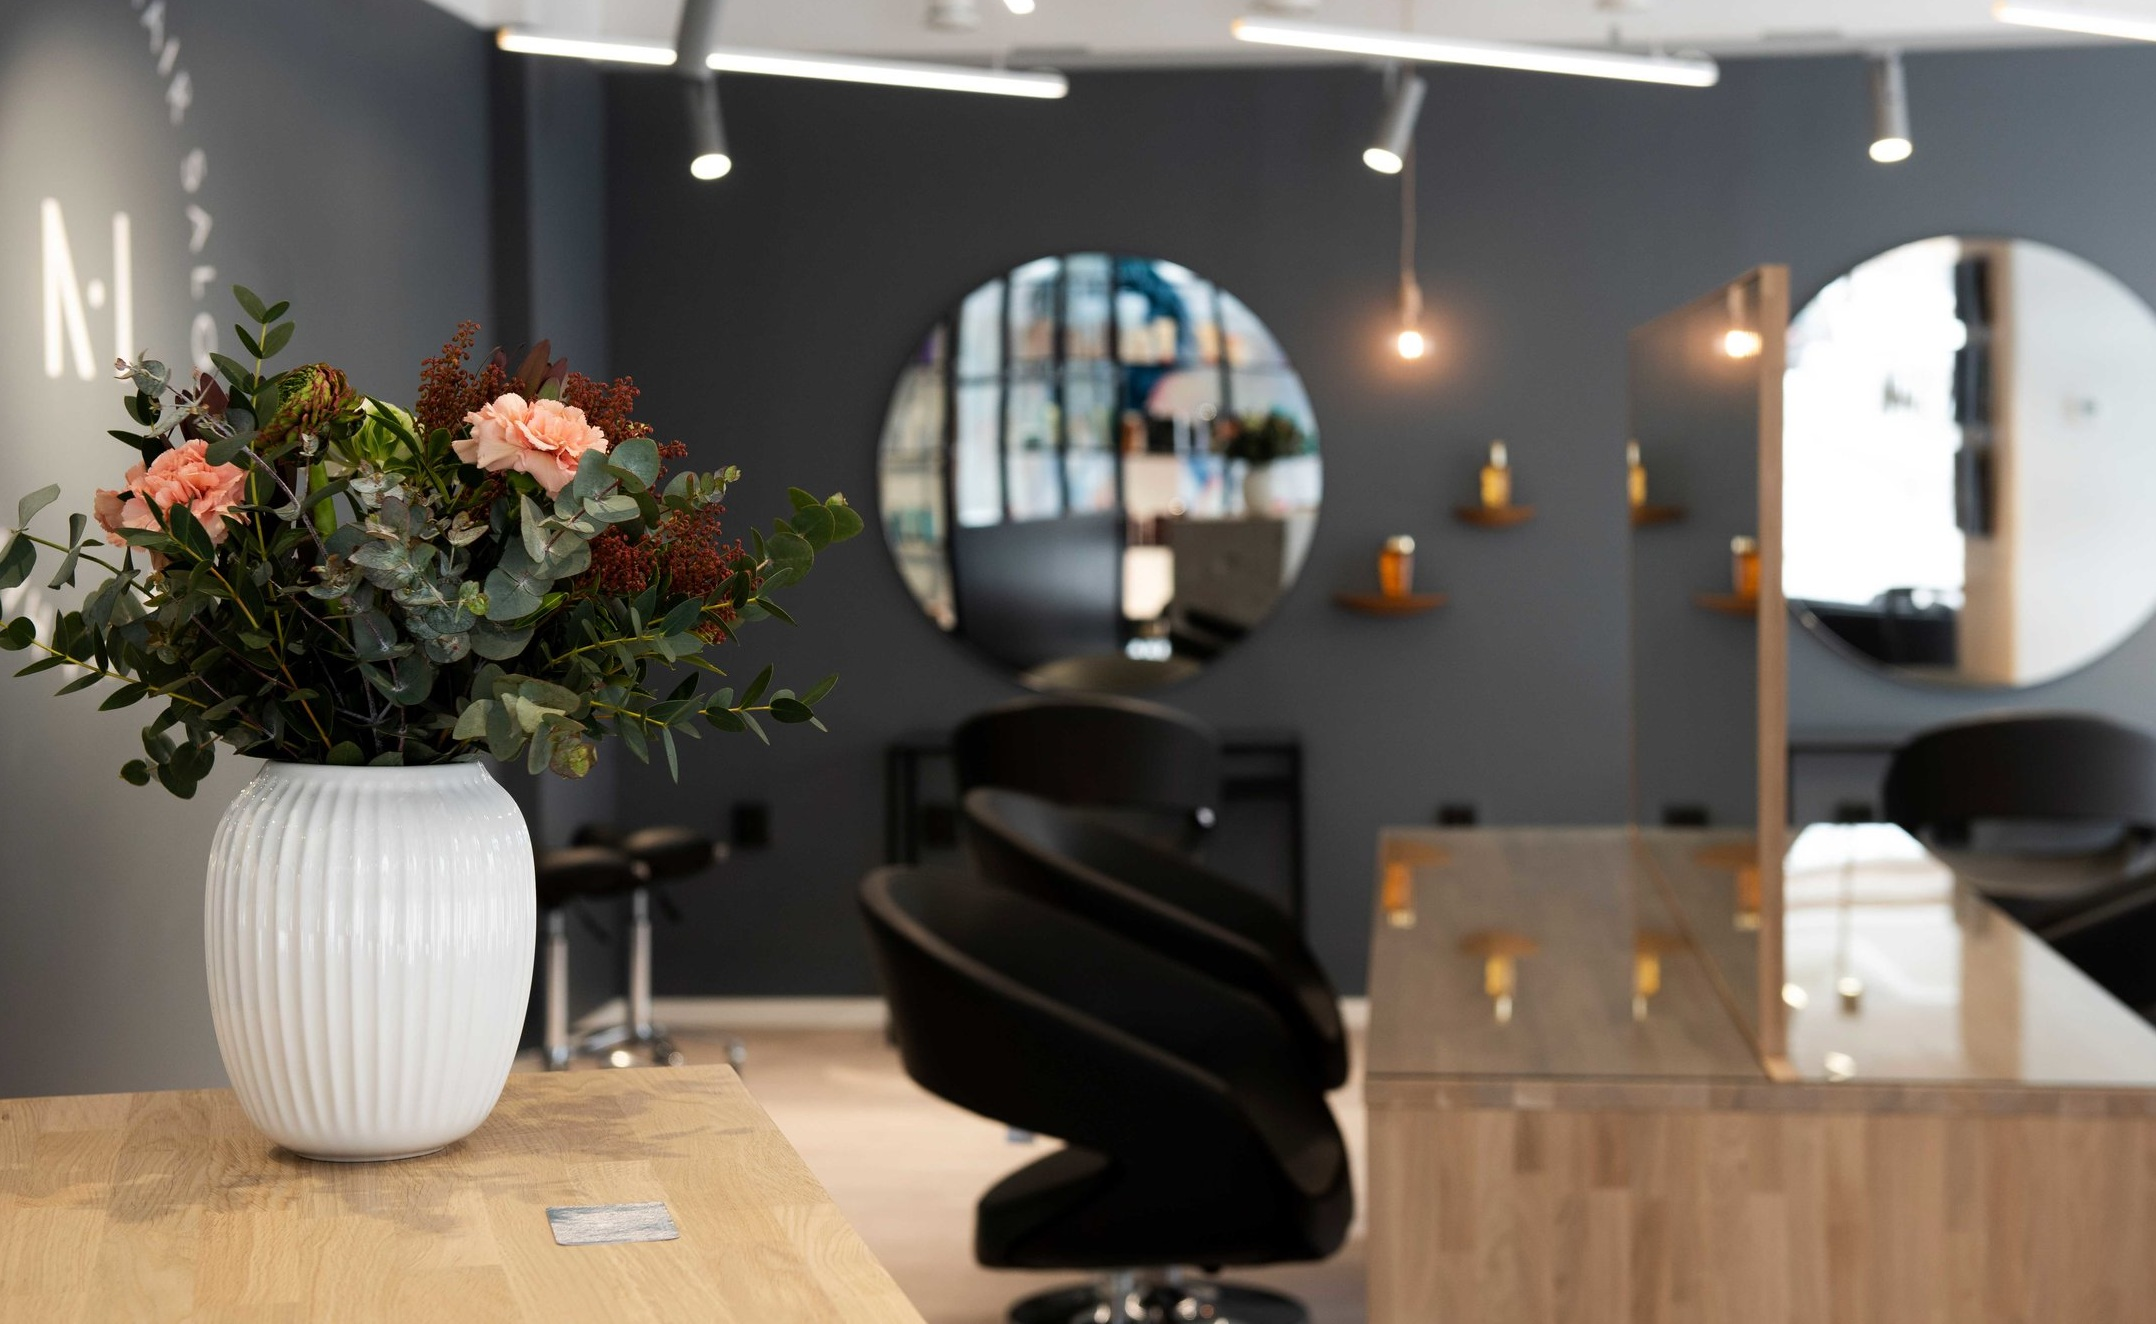 Hair salon 004.jpg